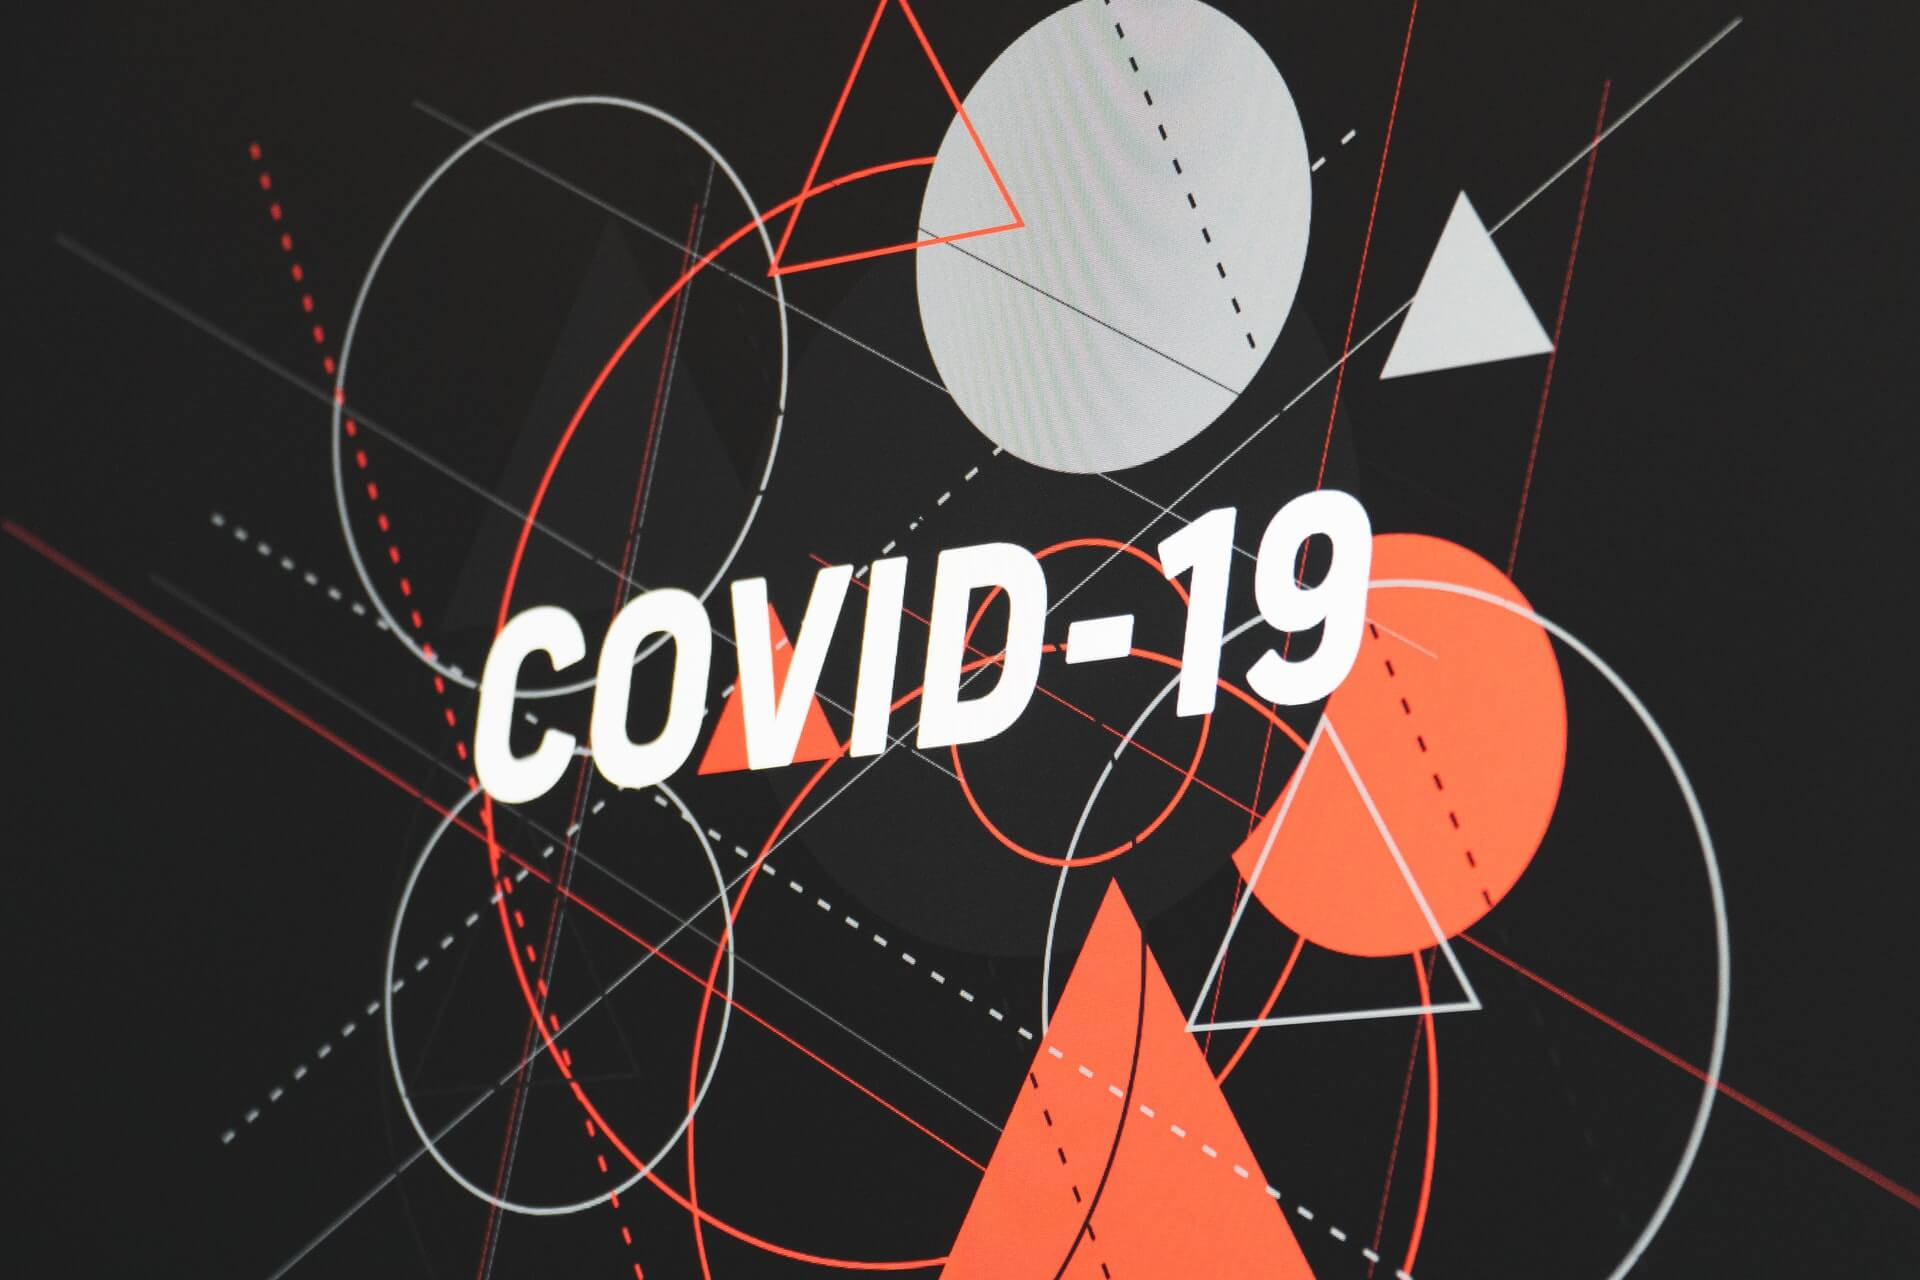 COVID-19 written on a background covered in shapes